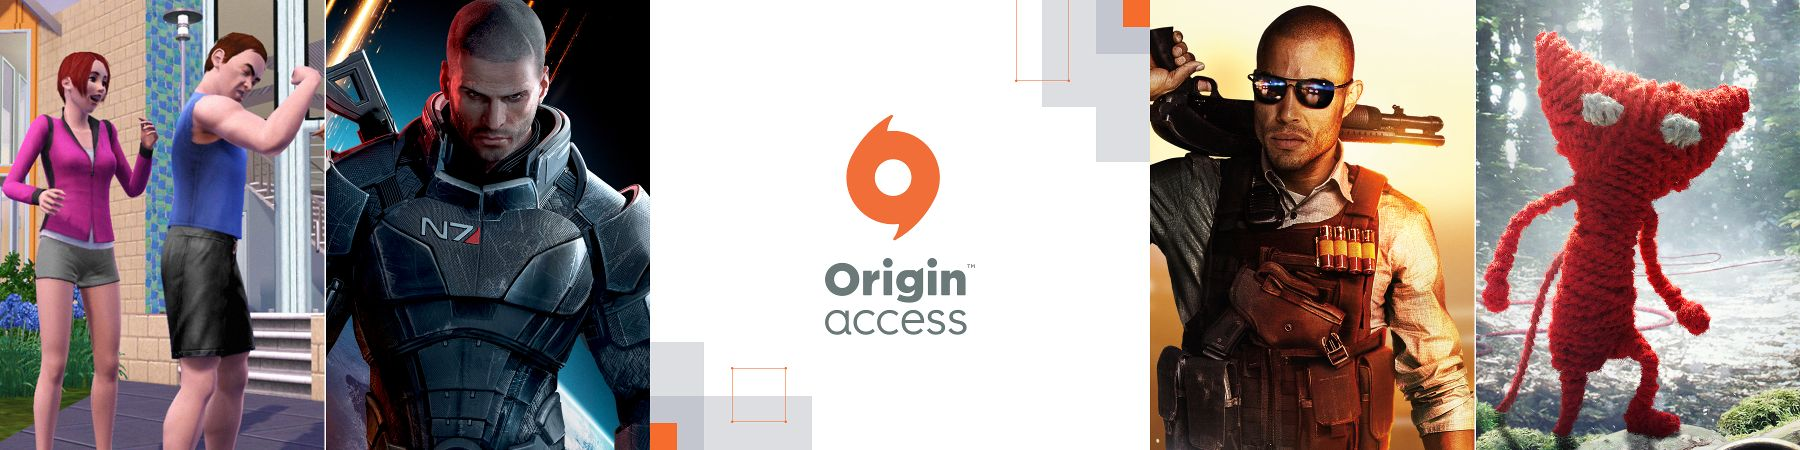 Origin Access Basic